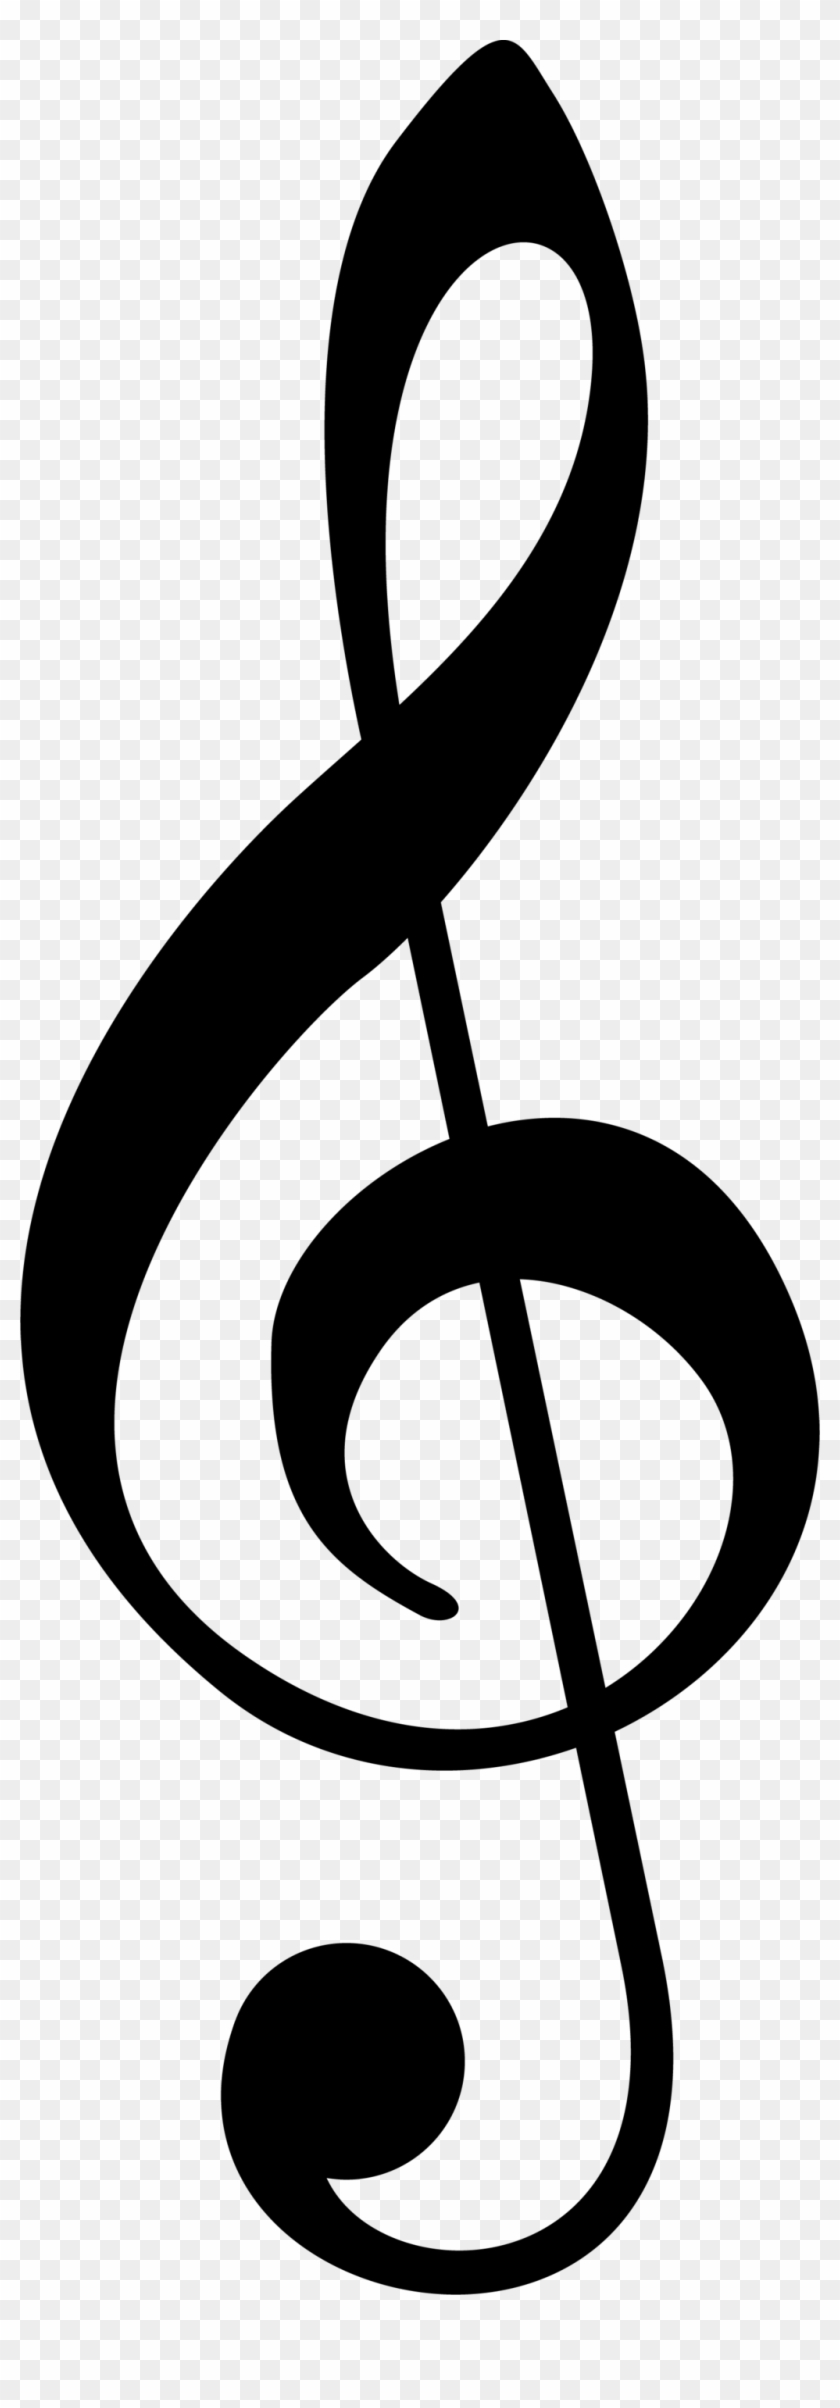 Music Speaks What Cannot Be Expressed Soothes The Music Symbols